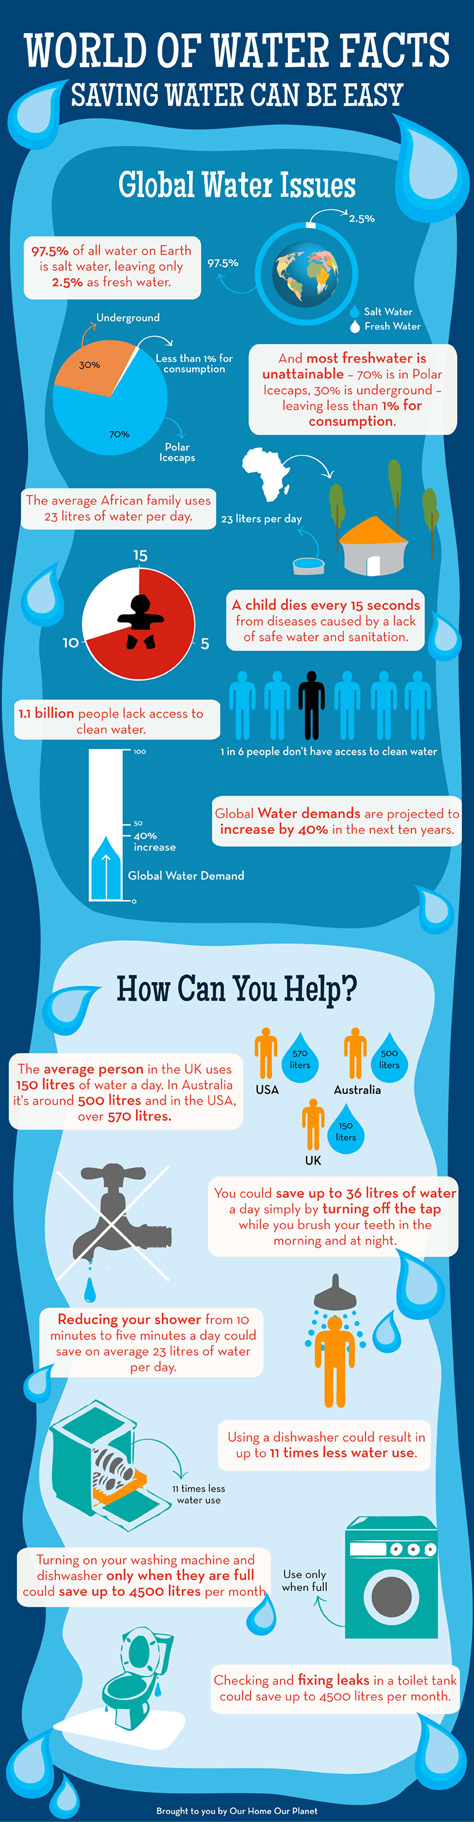 infographic-world-of-water-facts-big